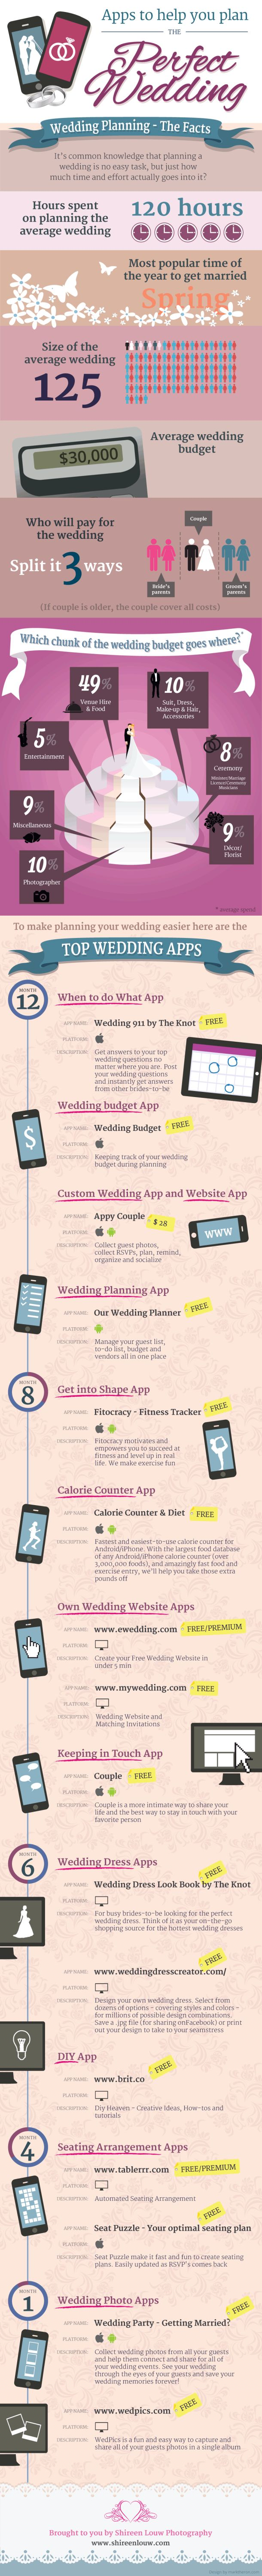 Apps To Help You Plan The Perfect Wedding [INFOGRAPHIC]